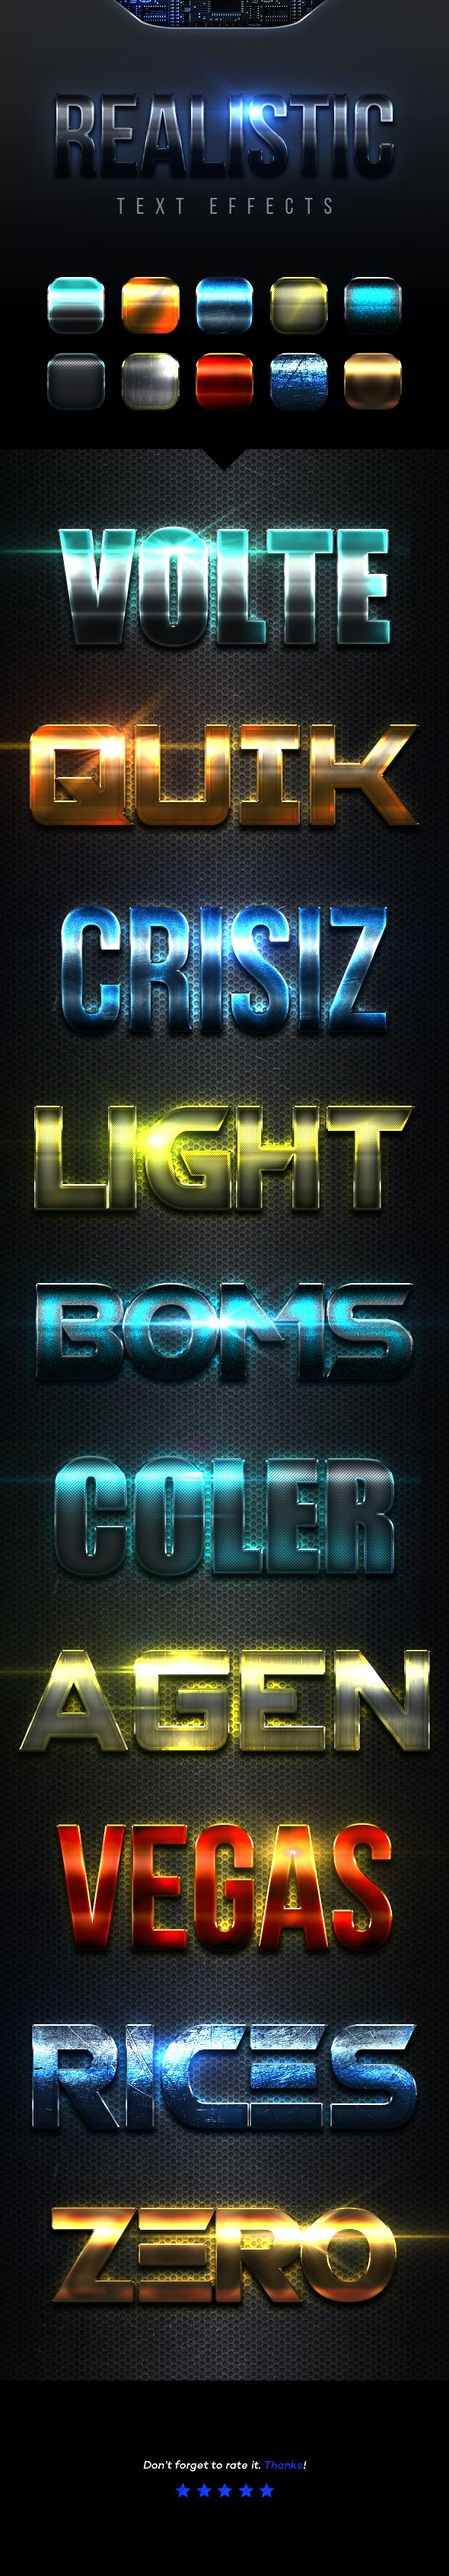 Realistic Text Effects Vol.4 - Text Effects Styles